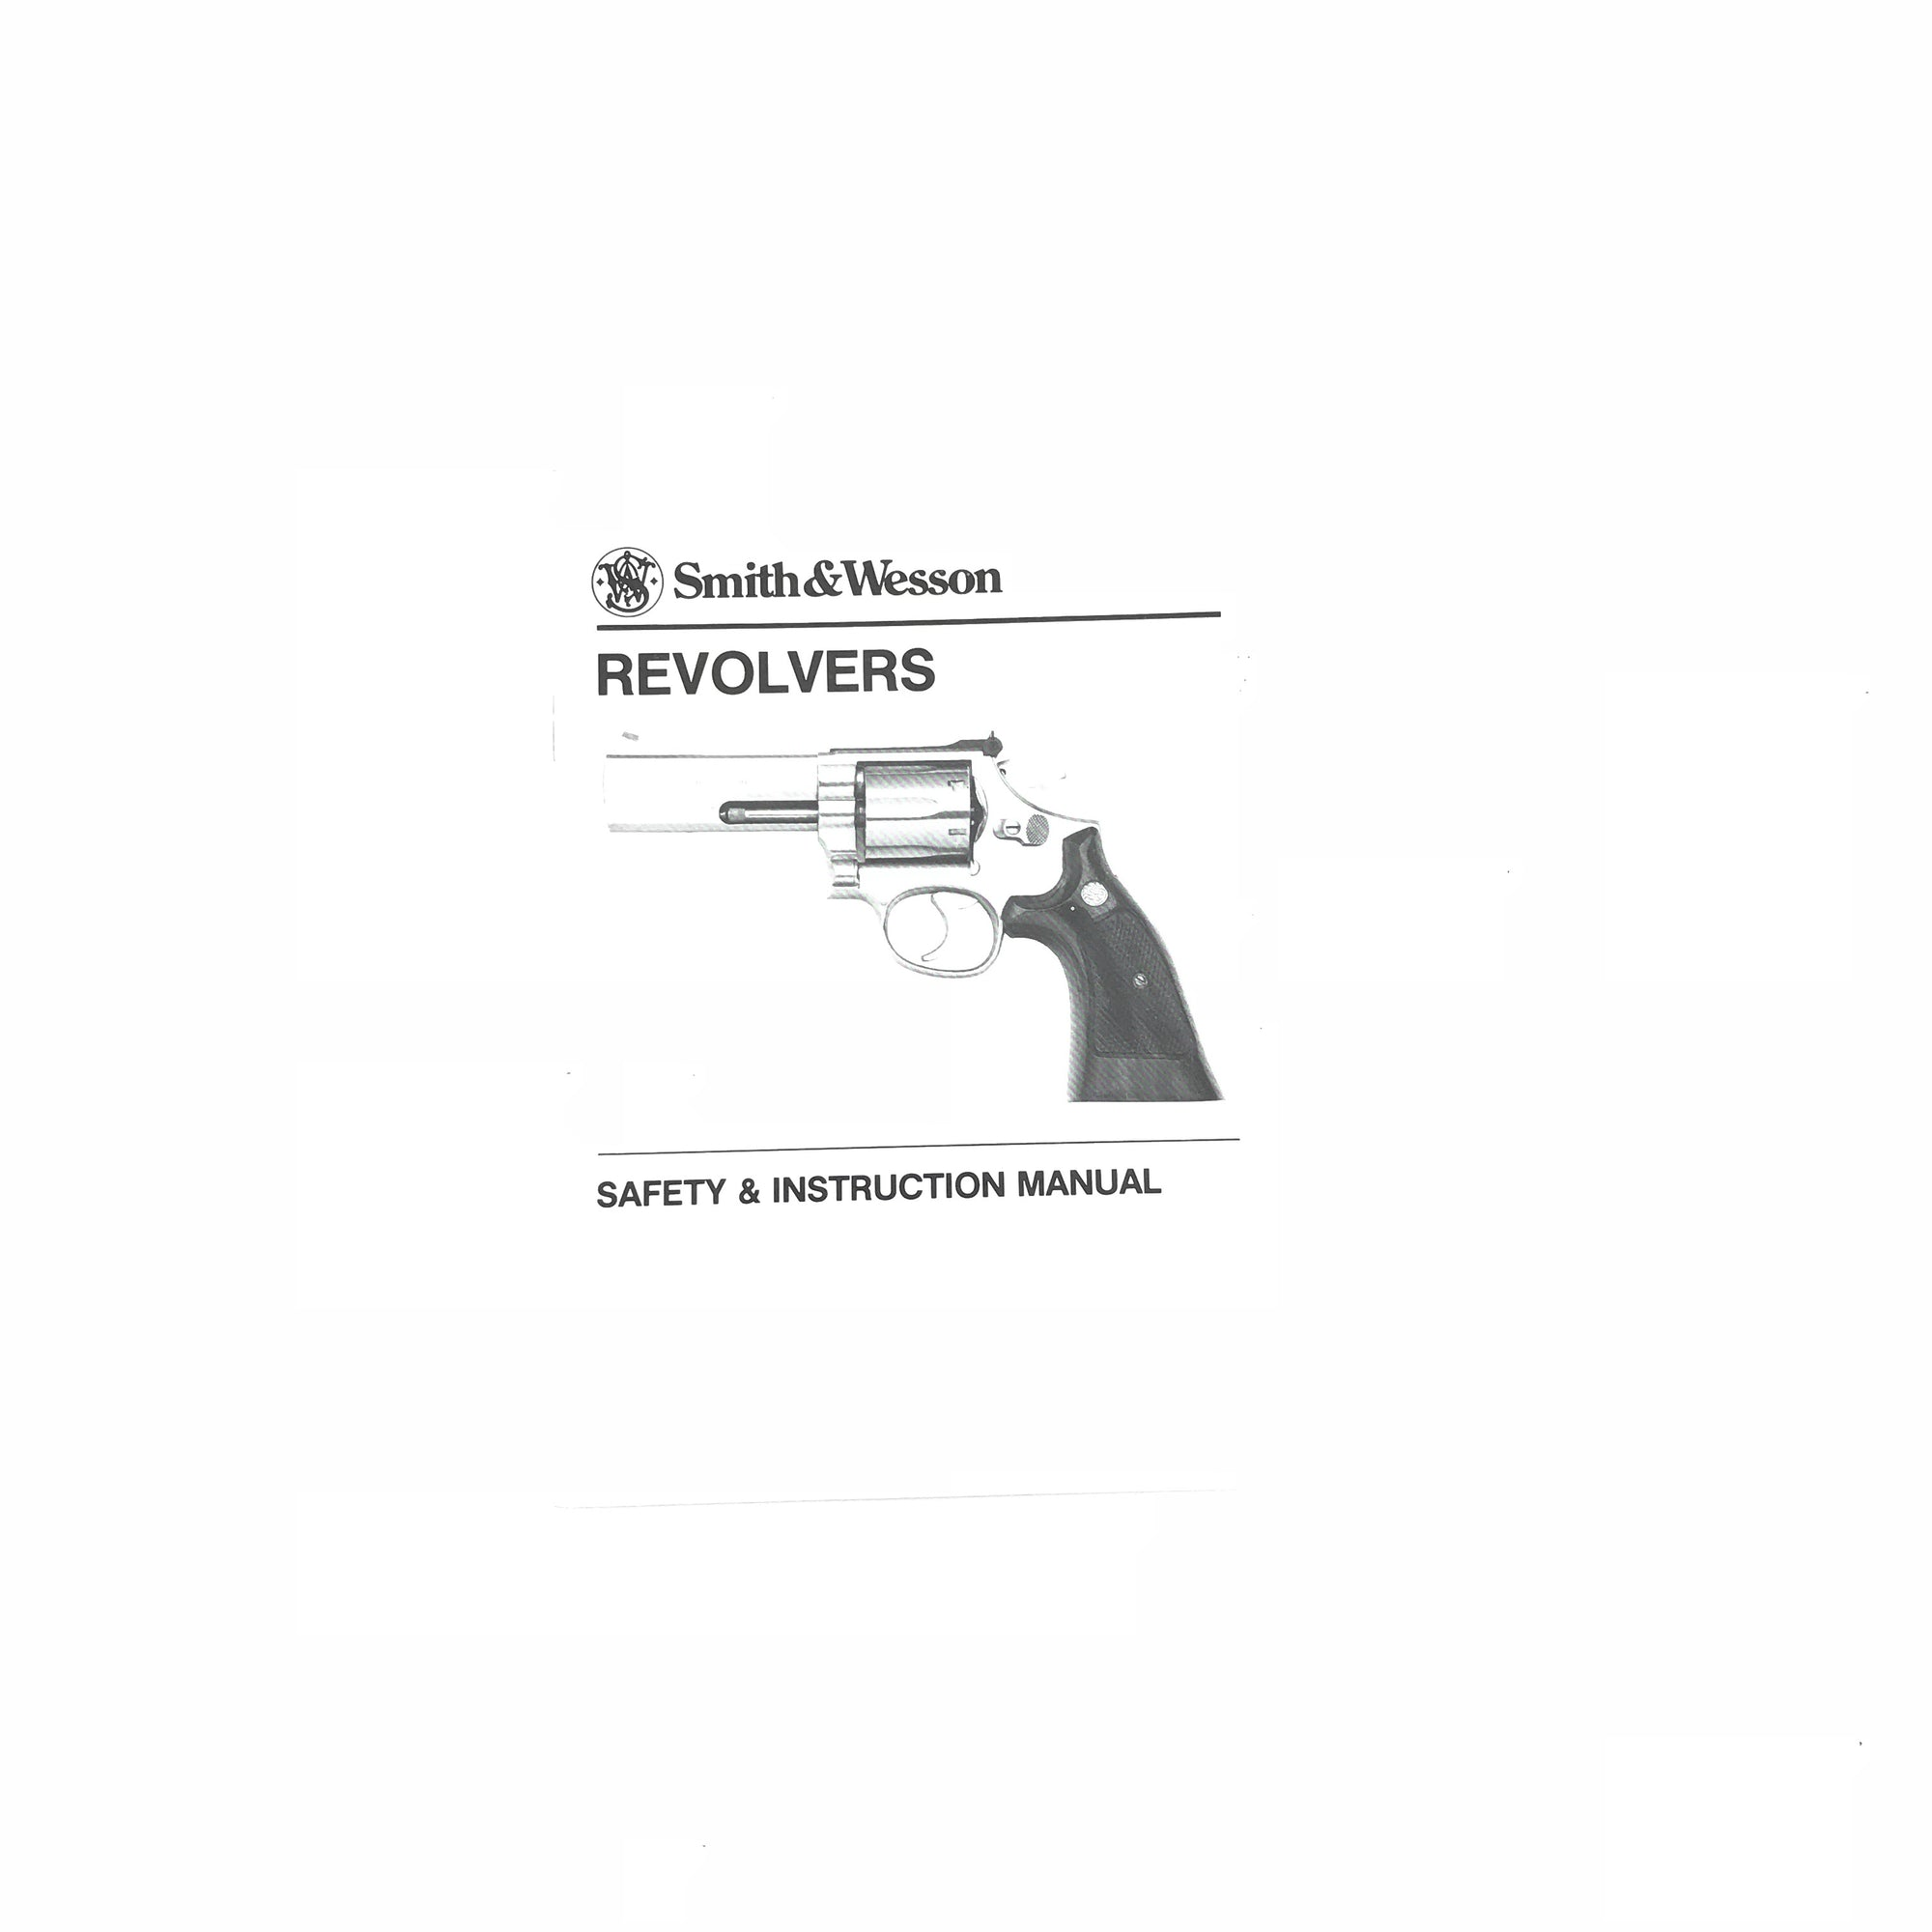 Smith & Wesson Revolvers - Safety & Instruction Manual